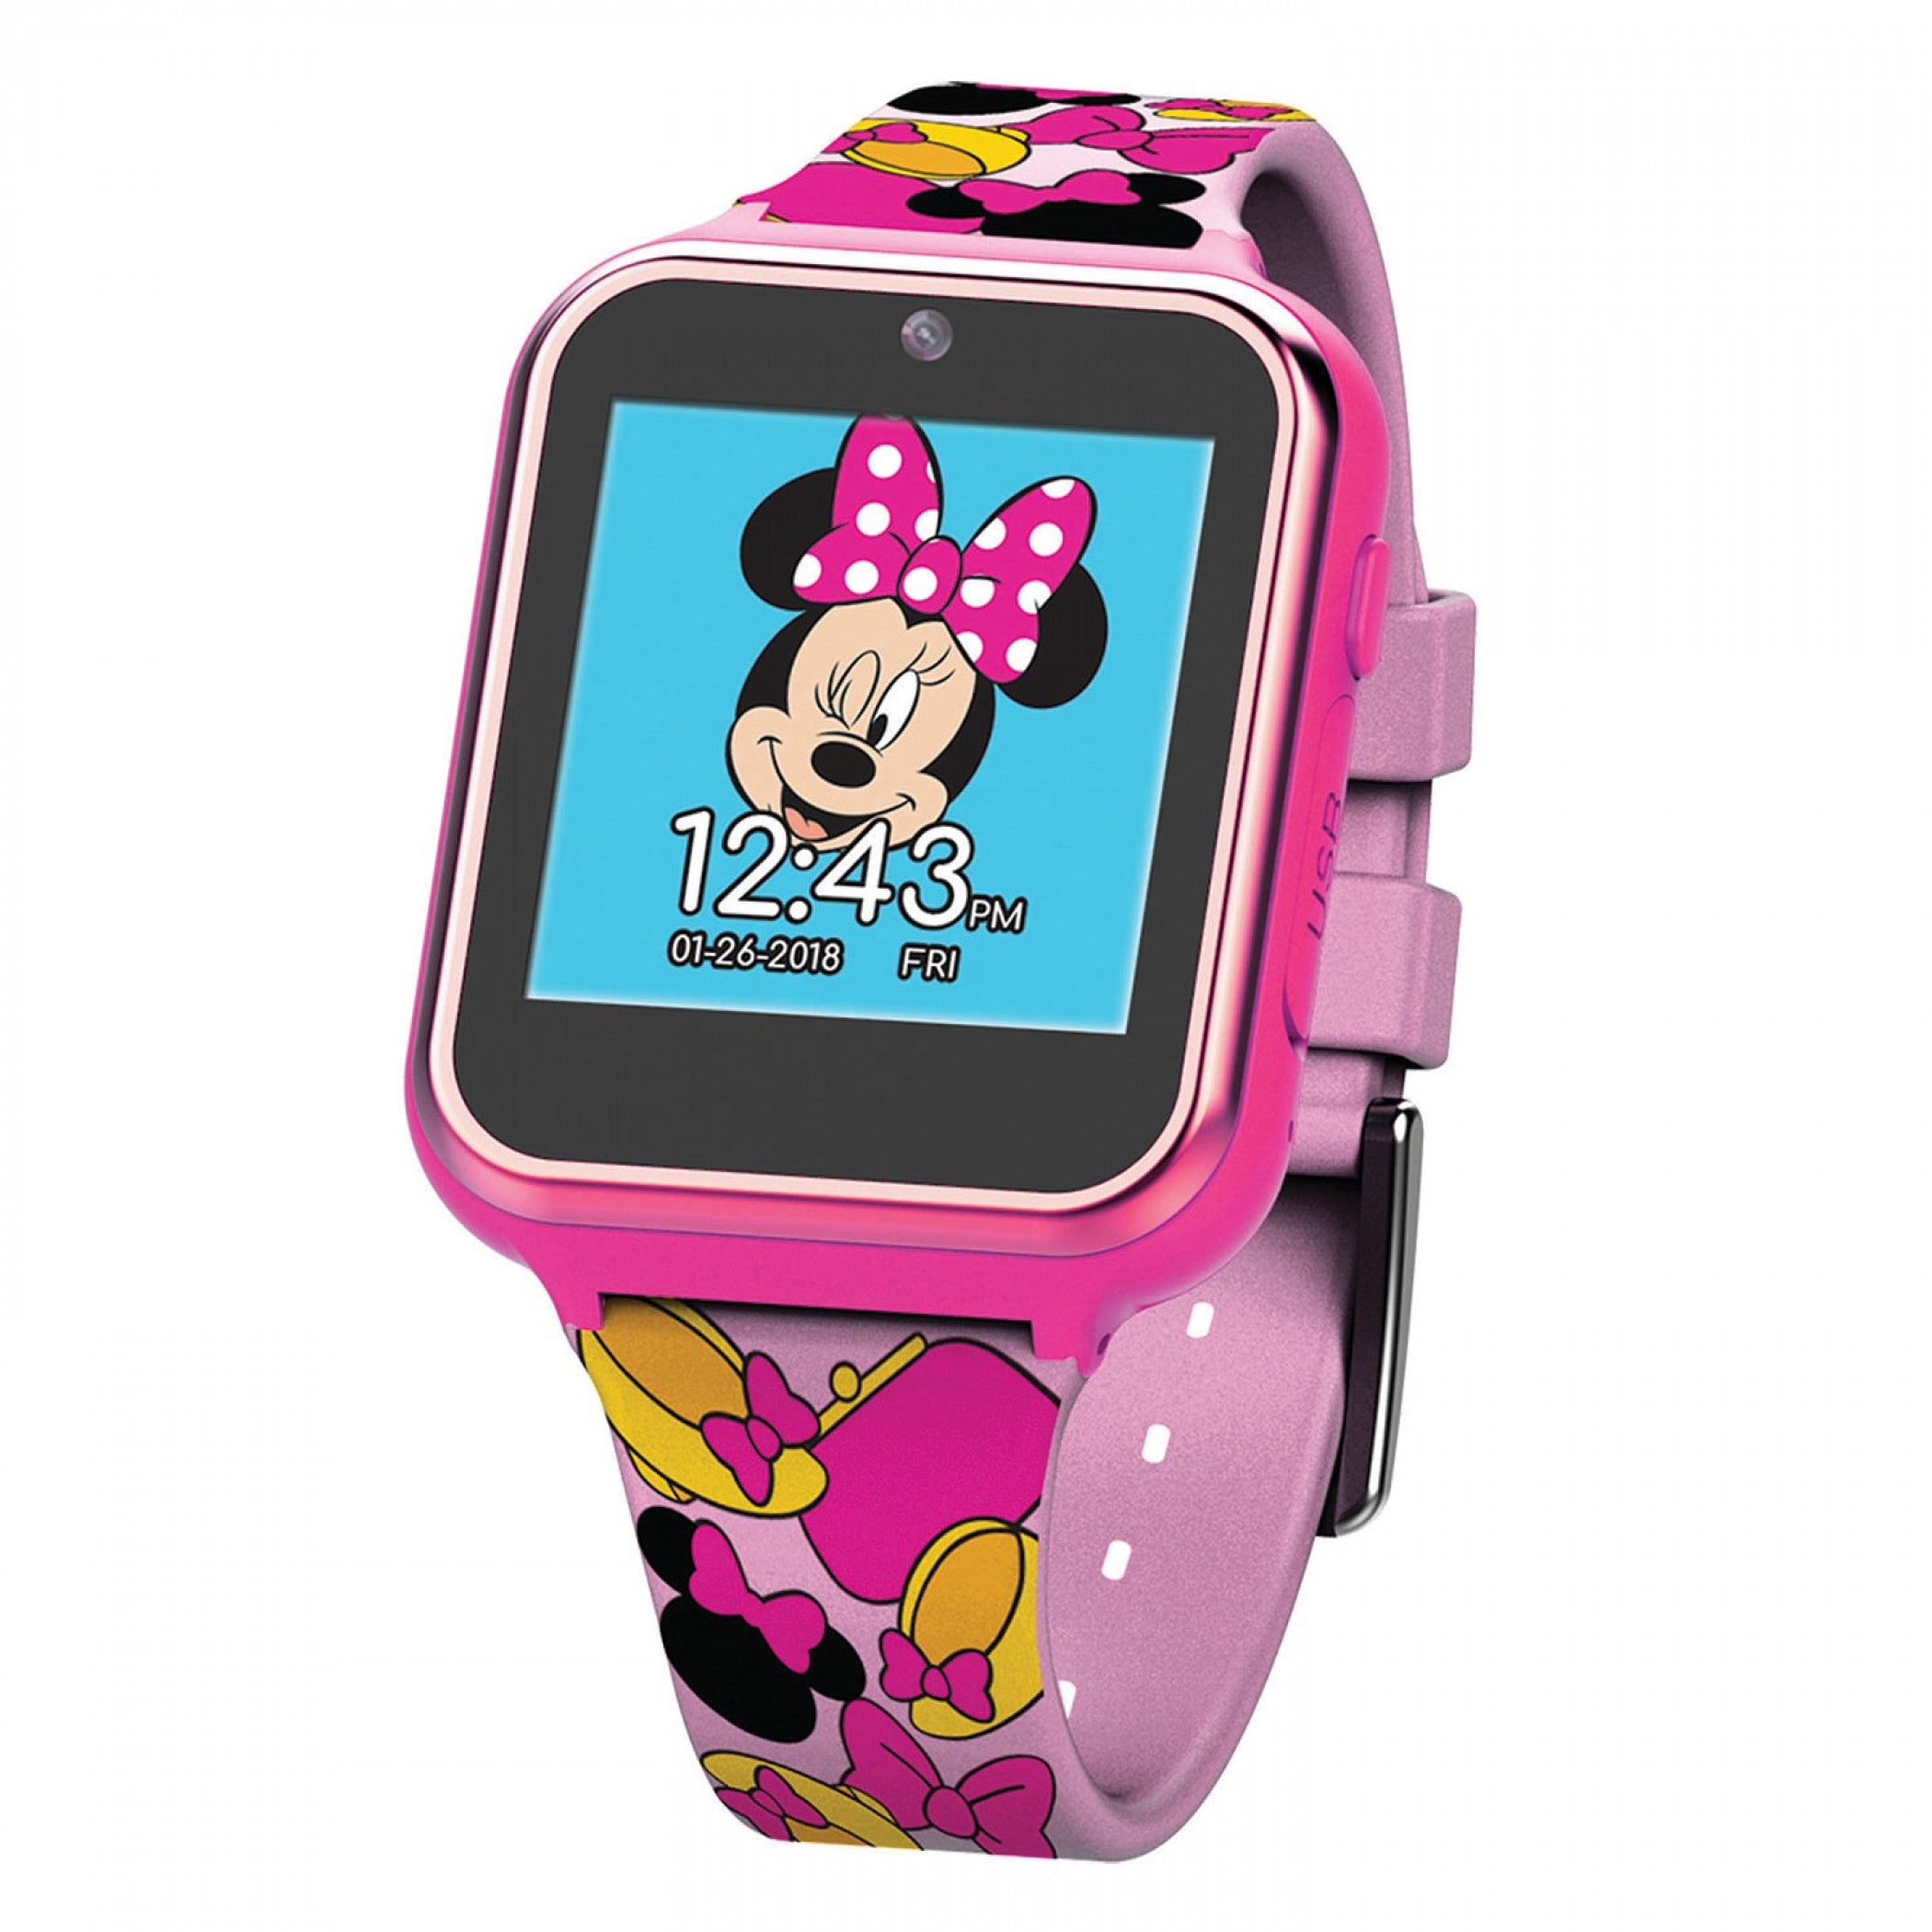 Minnie Mouse Interactive Smart Watch